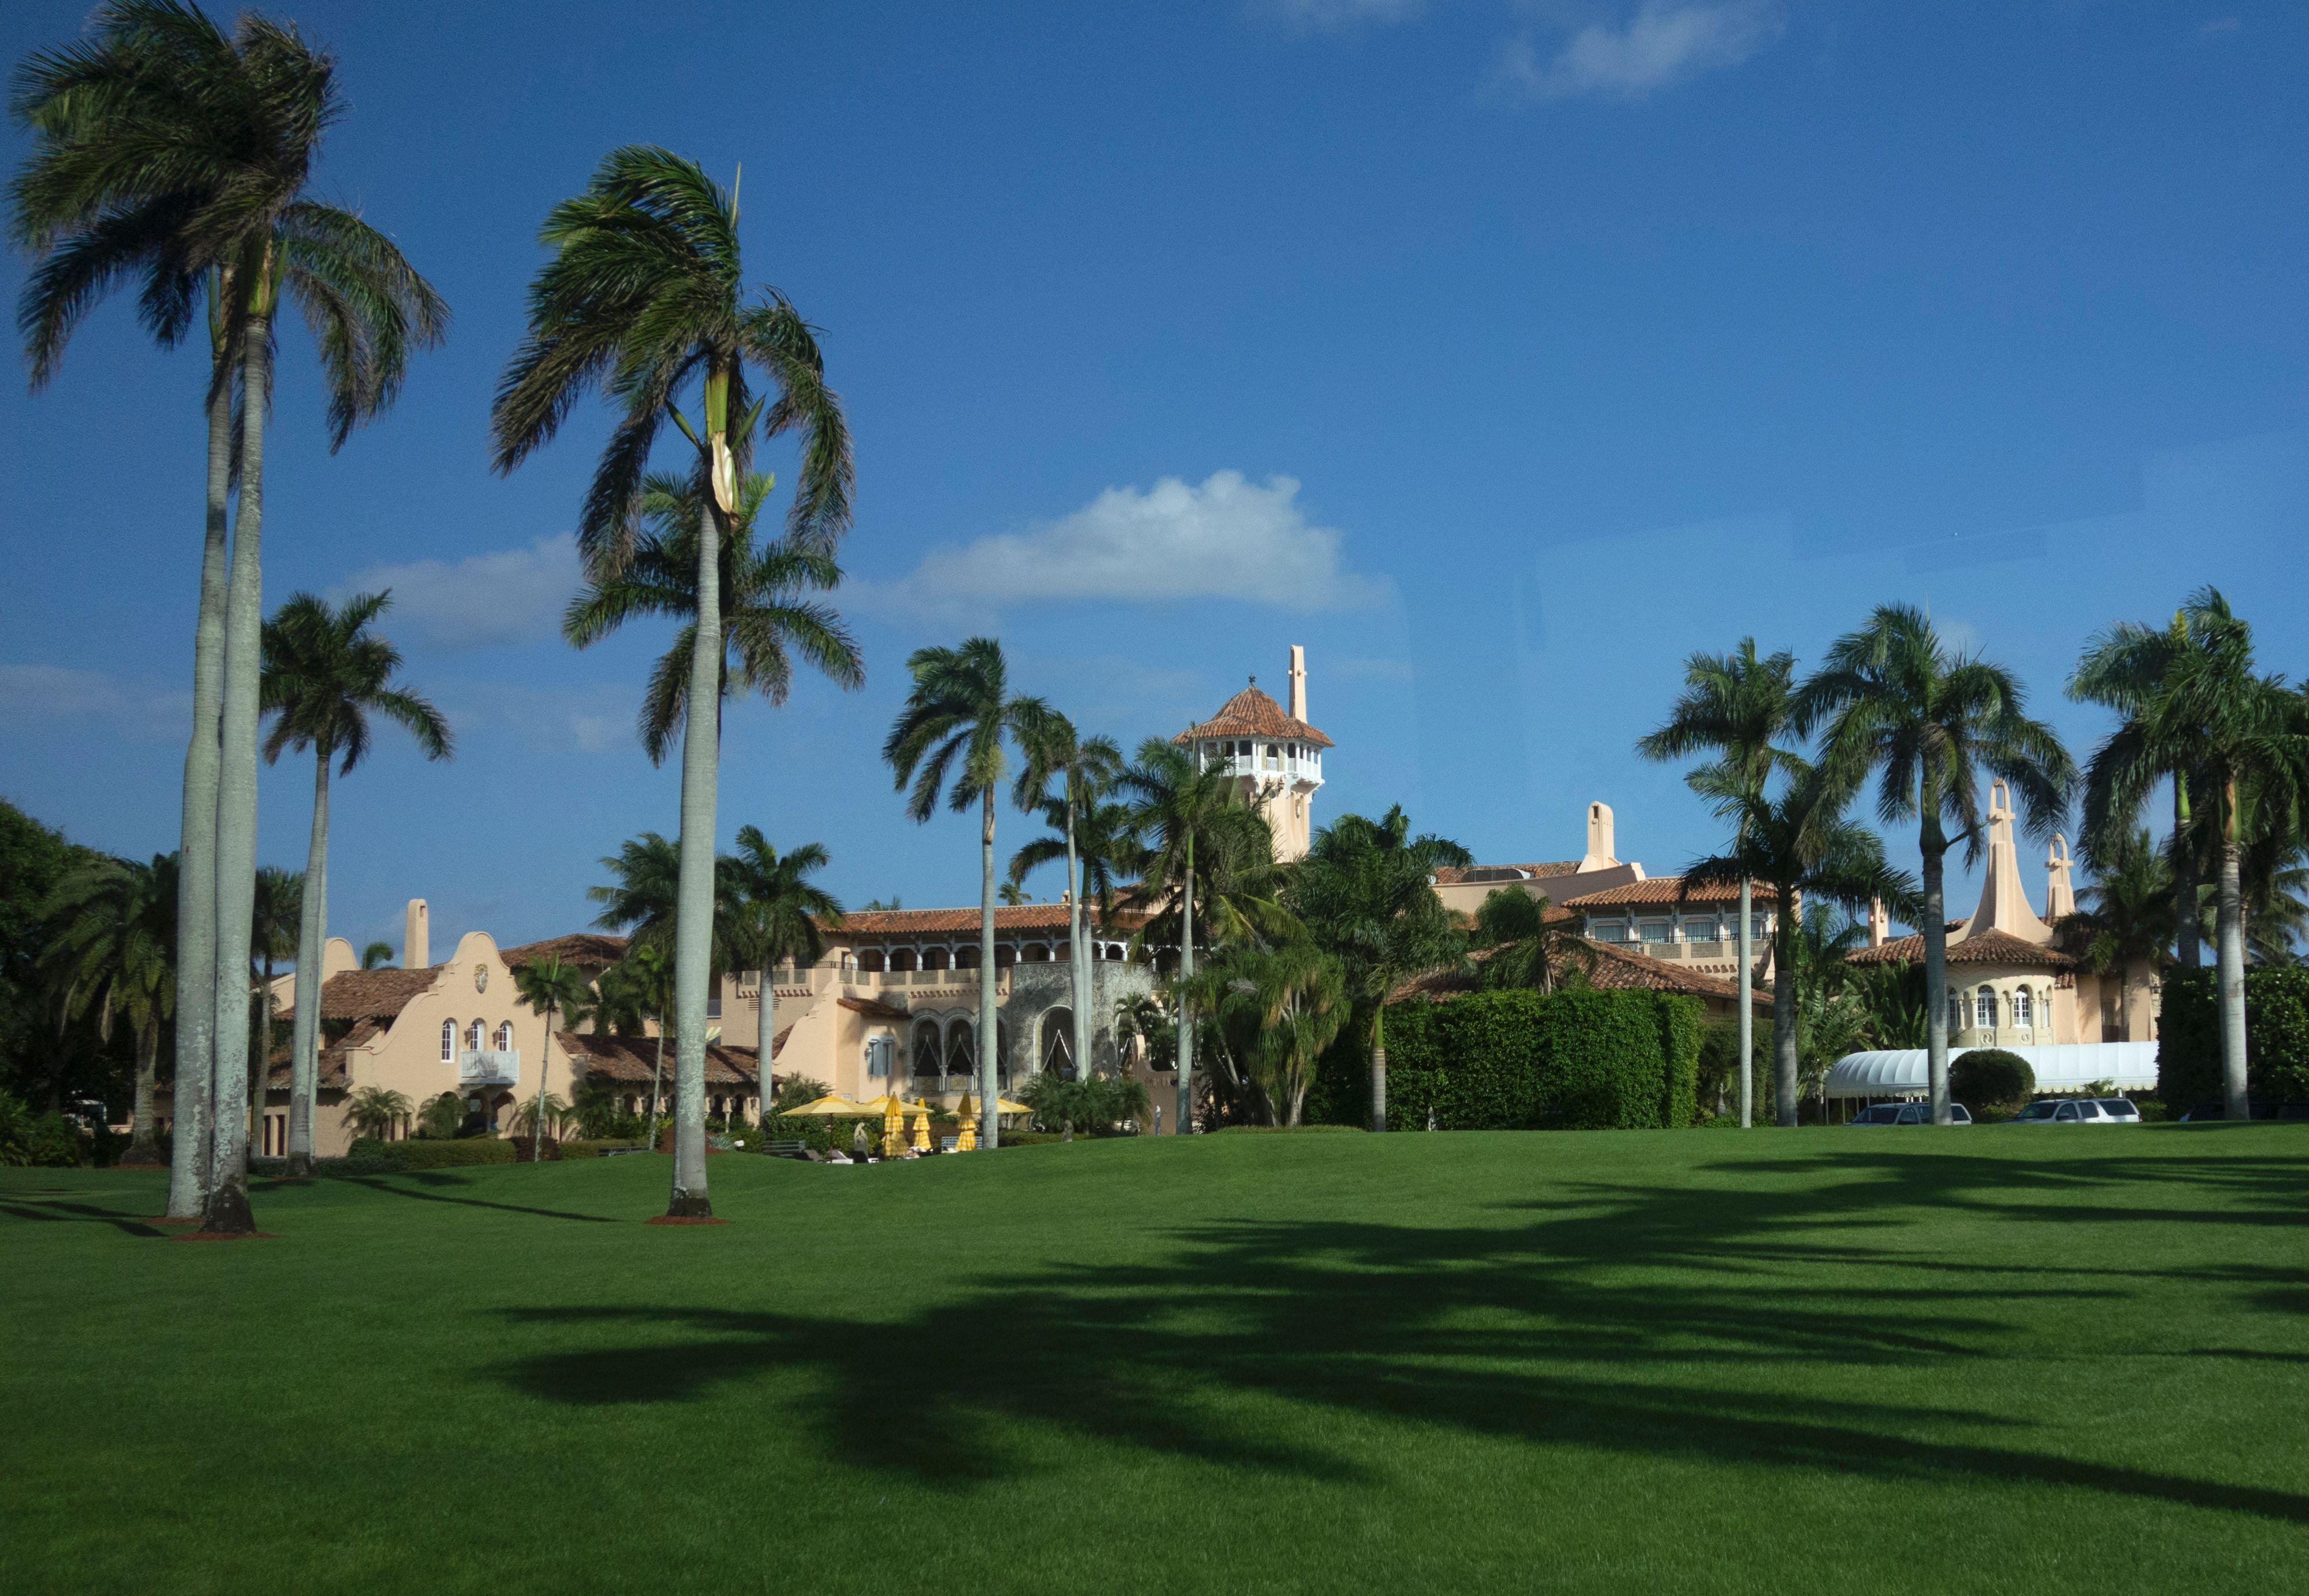 The Mar-a-Lago Club January 1, 2017 at Mar-a-Lago in Palm Beach, Florida. DON EMMERT/AFP/Getty Images